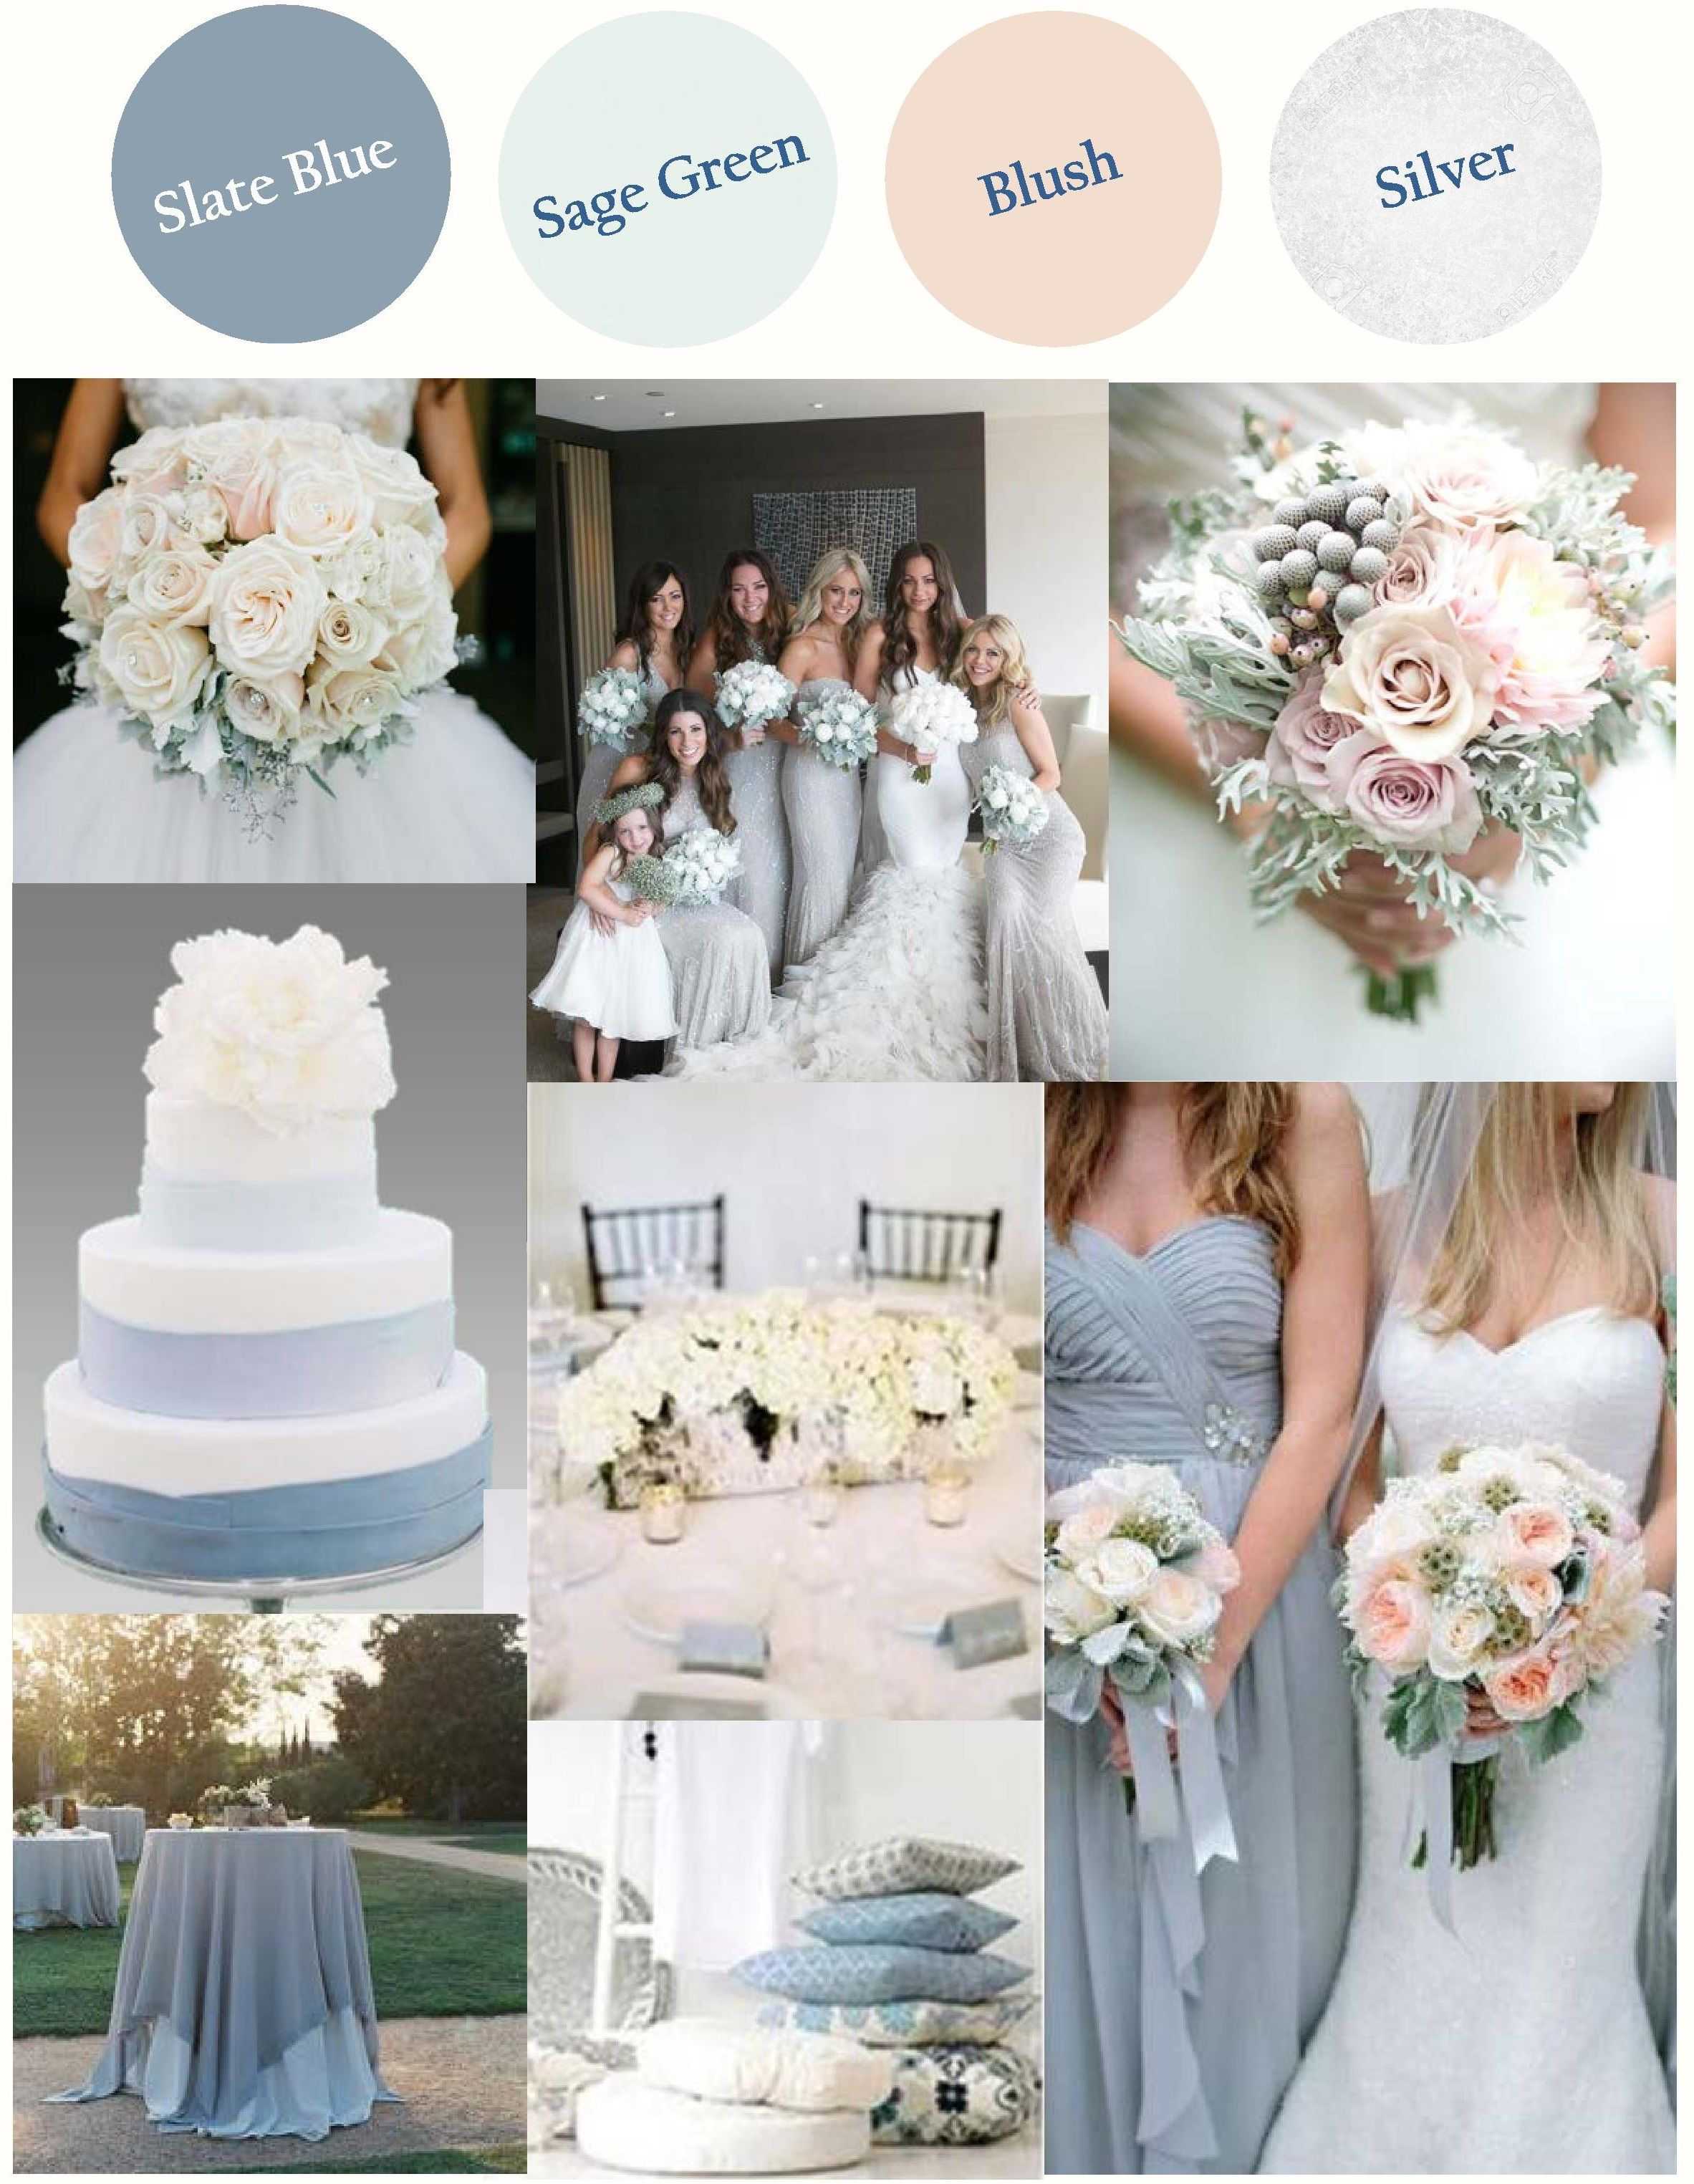 Wedding decorations yellow and gray  Slate Blue or Dusty Blue with Light Sage Green Blush and Silver